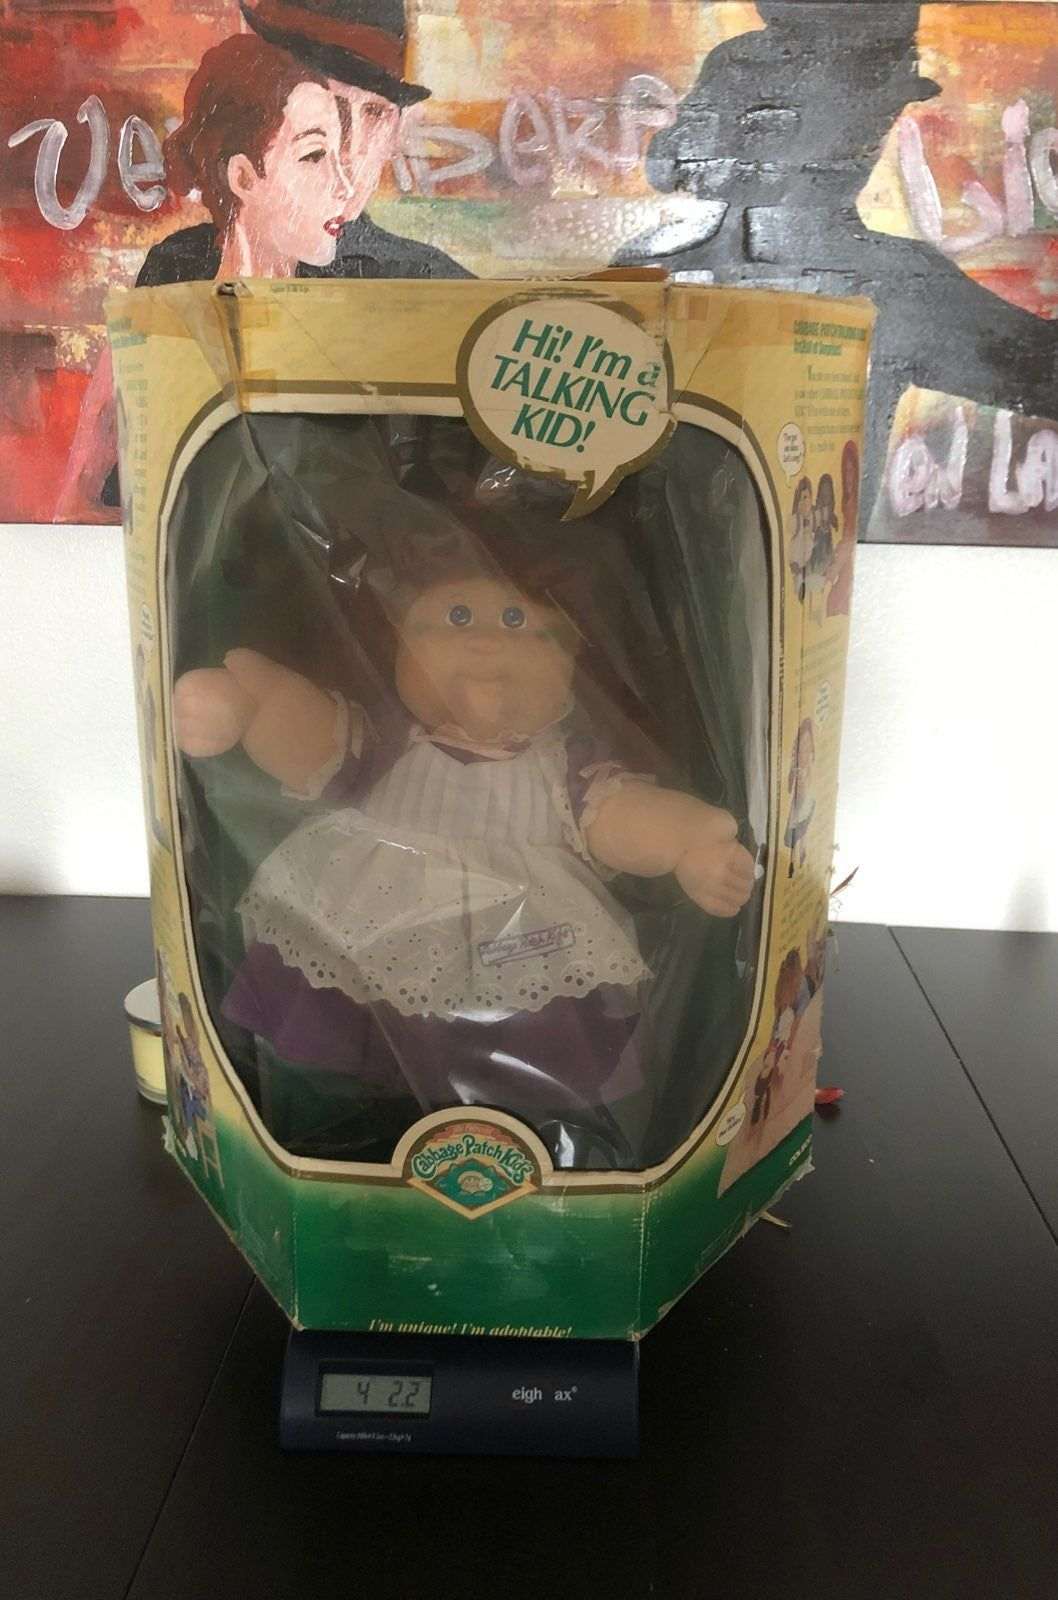 1987 Cabbage Patch Doll In Box Comes With Birth Certificate And Cup She Holds In Hand Has Not Cabbage Patch Kids Dolls Cabbage Patch Dolls Cabbage Patch Kids